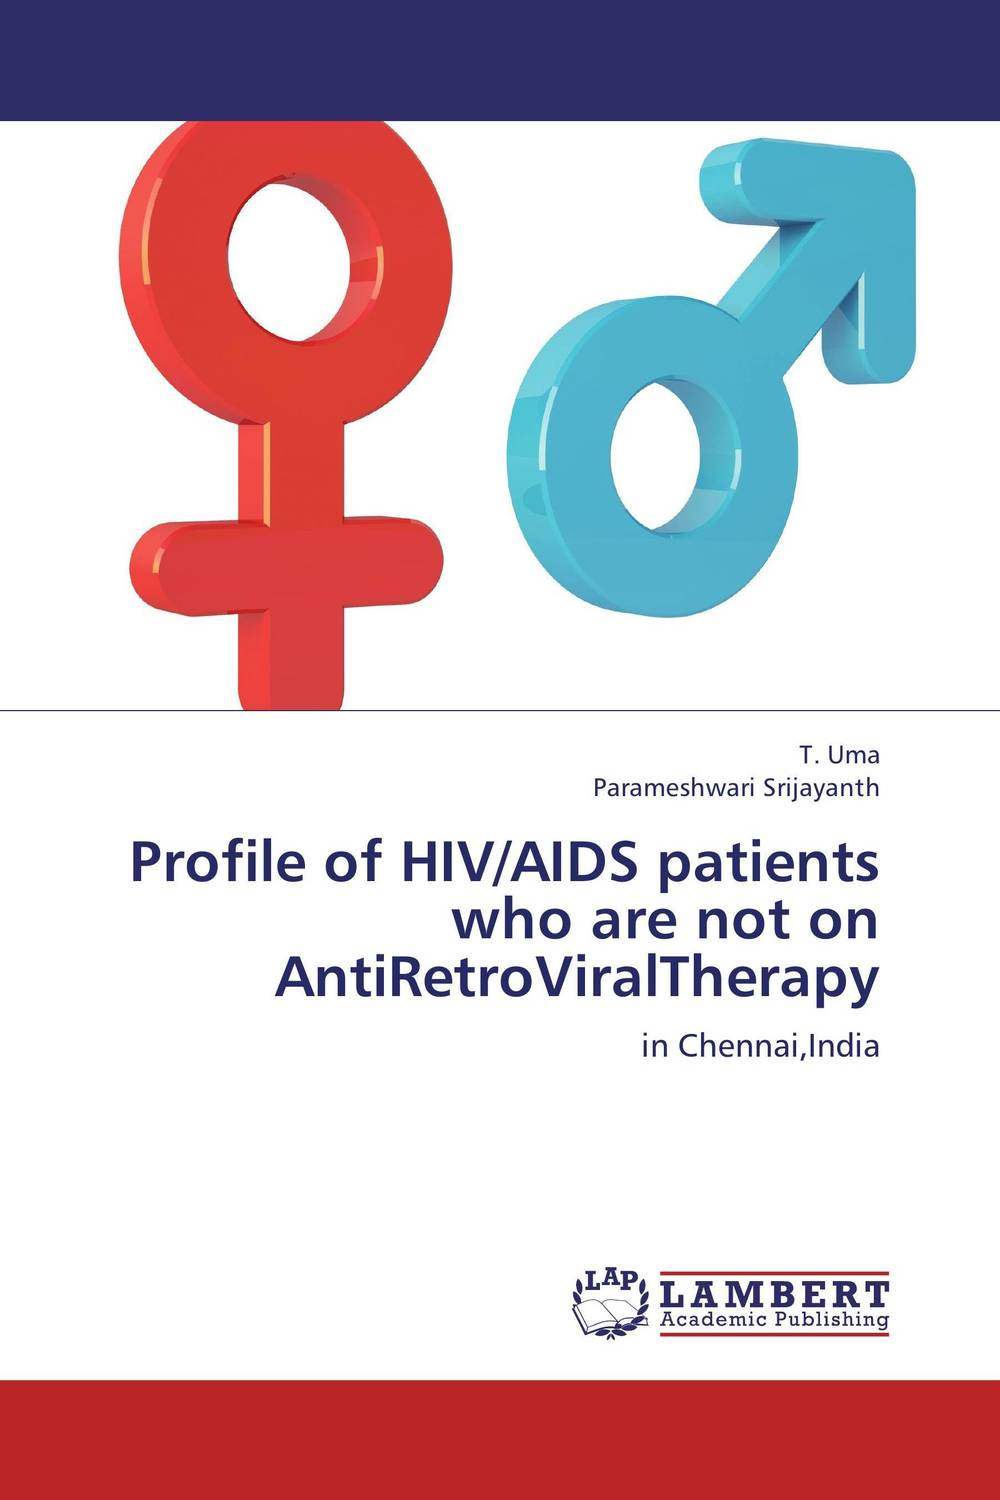 Profile of HIV/AIDS patients who are not on AntiRetroViralTherapy nutritional status of hiv positive patients